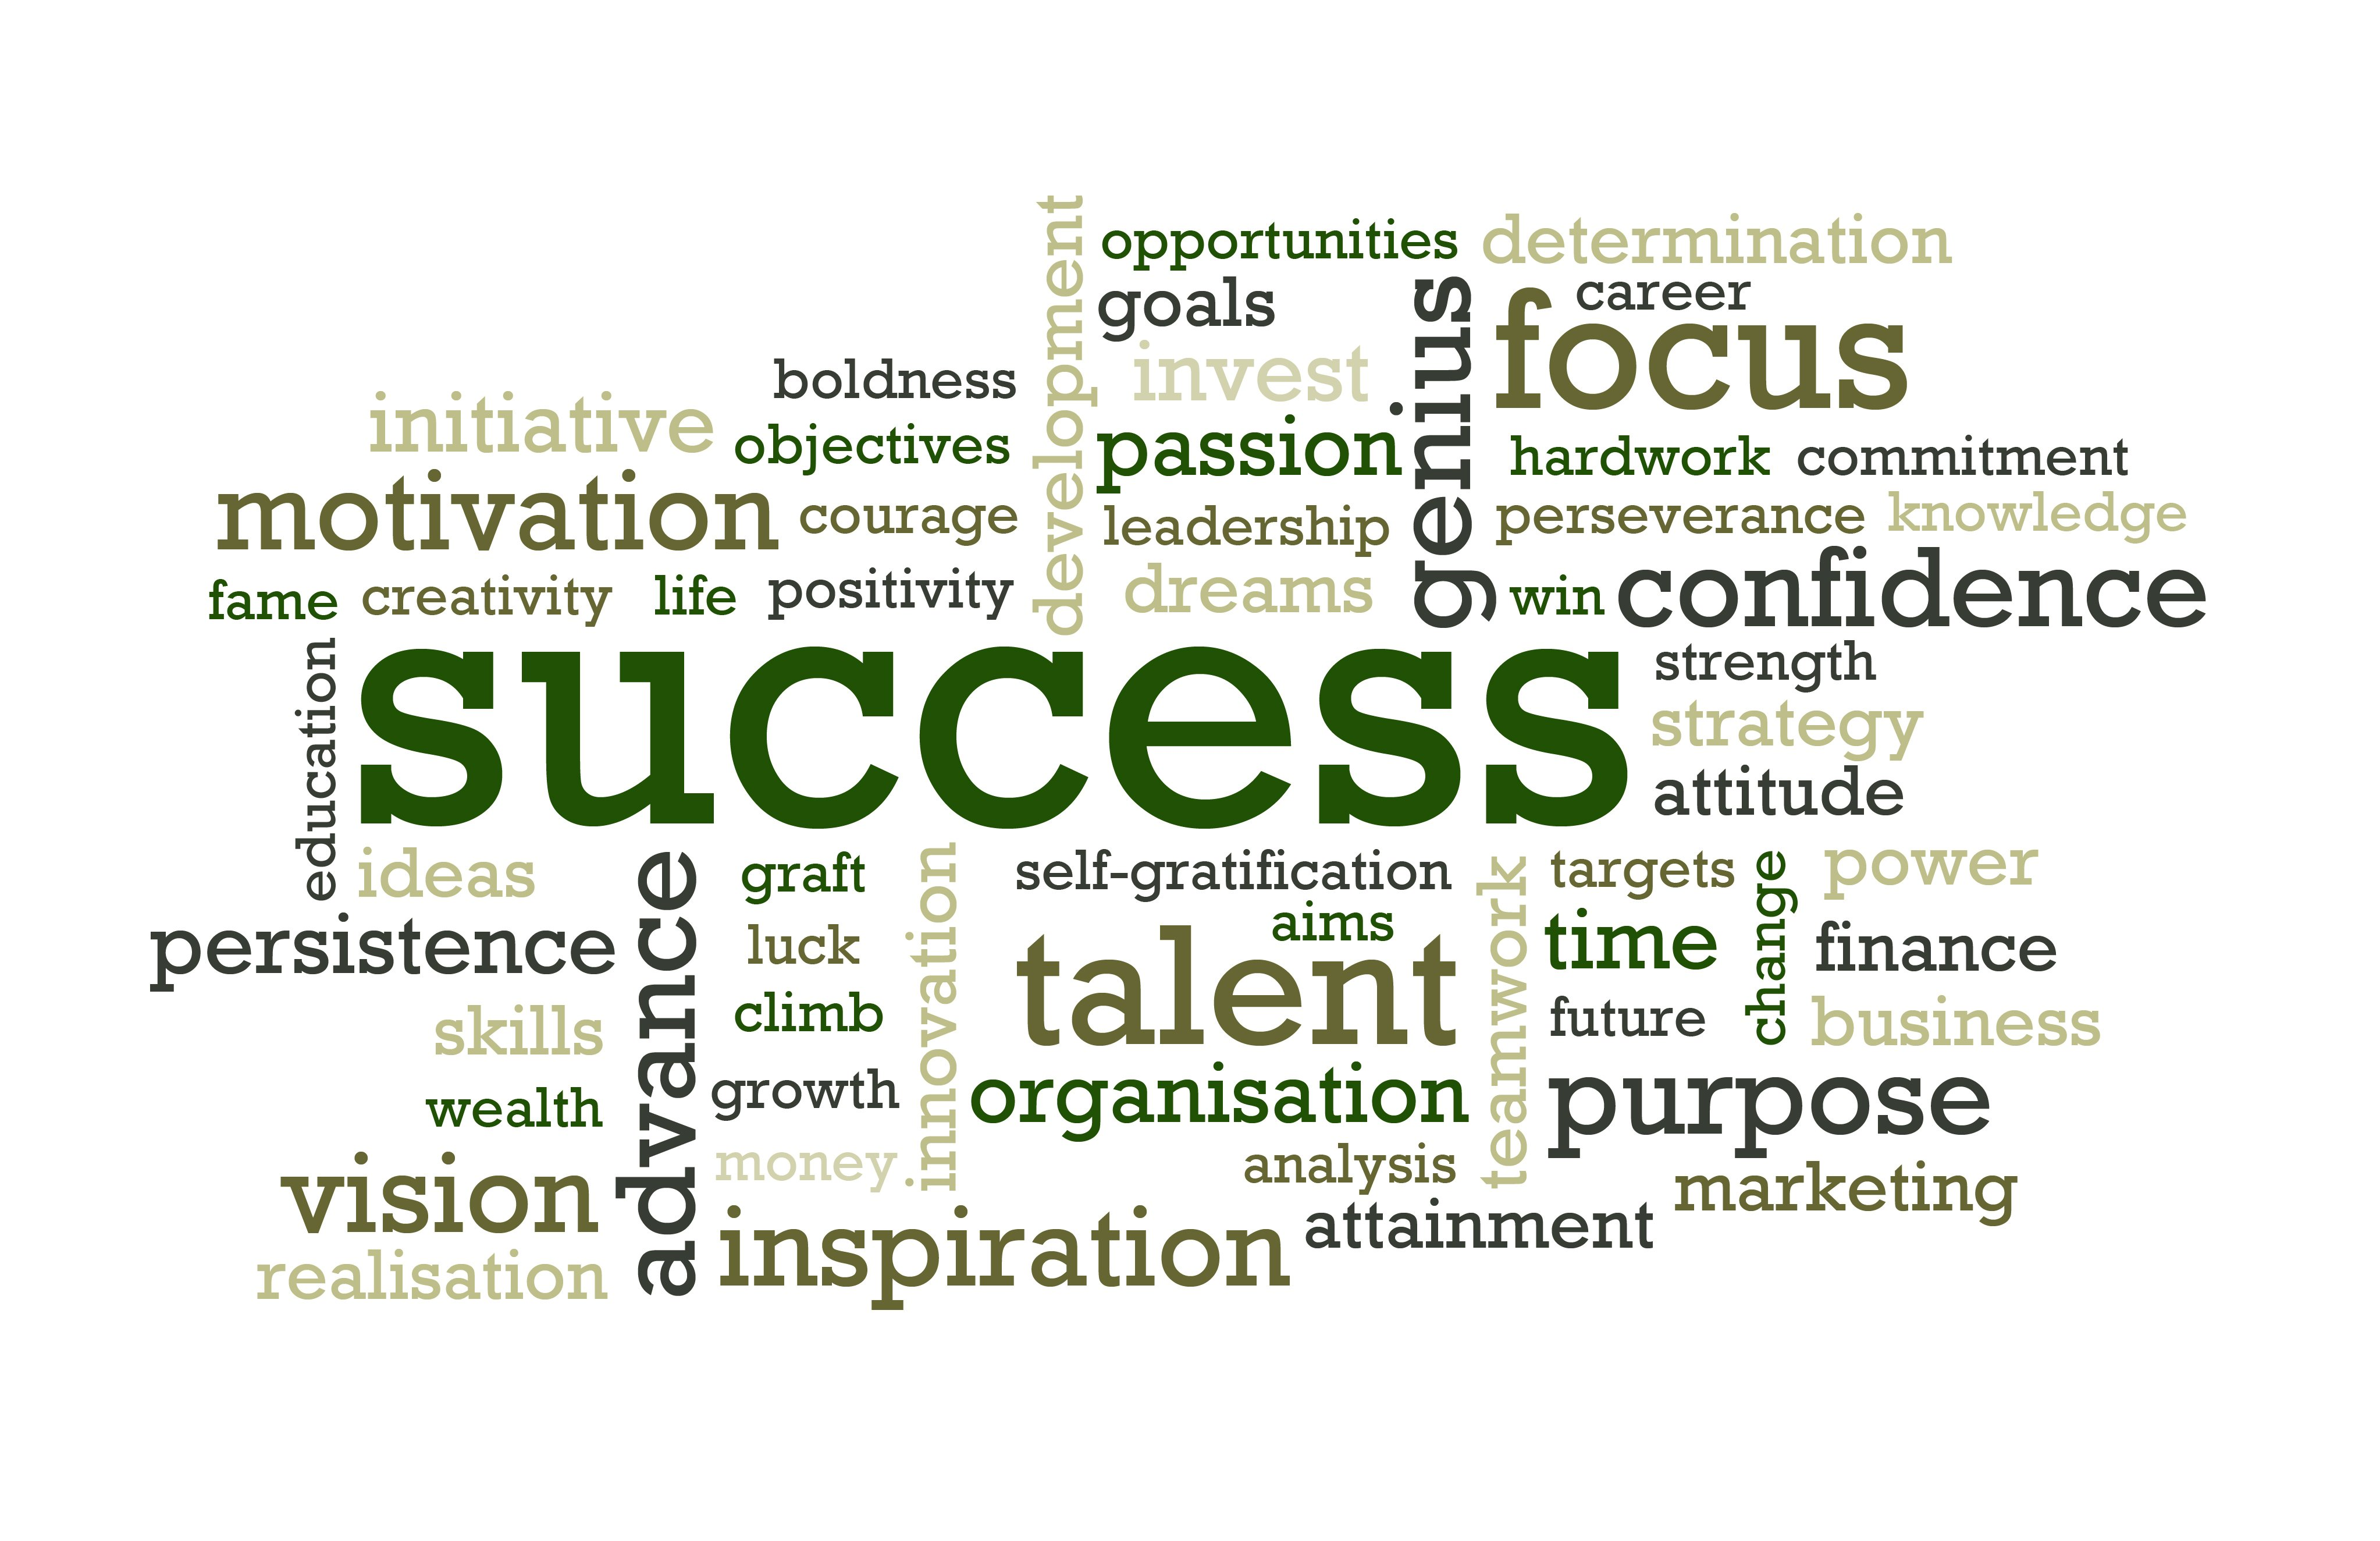 All the qualities of a successful arttrepreneur